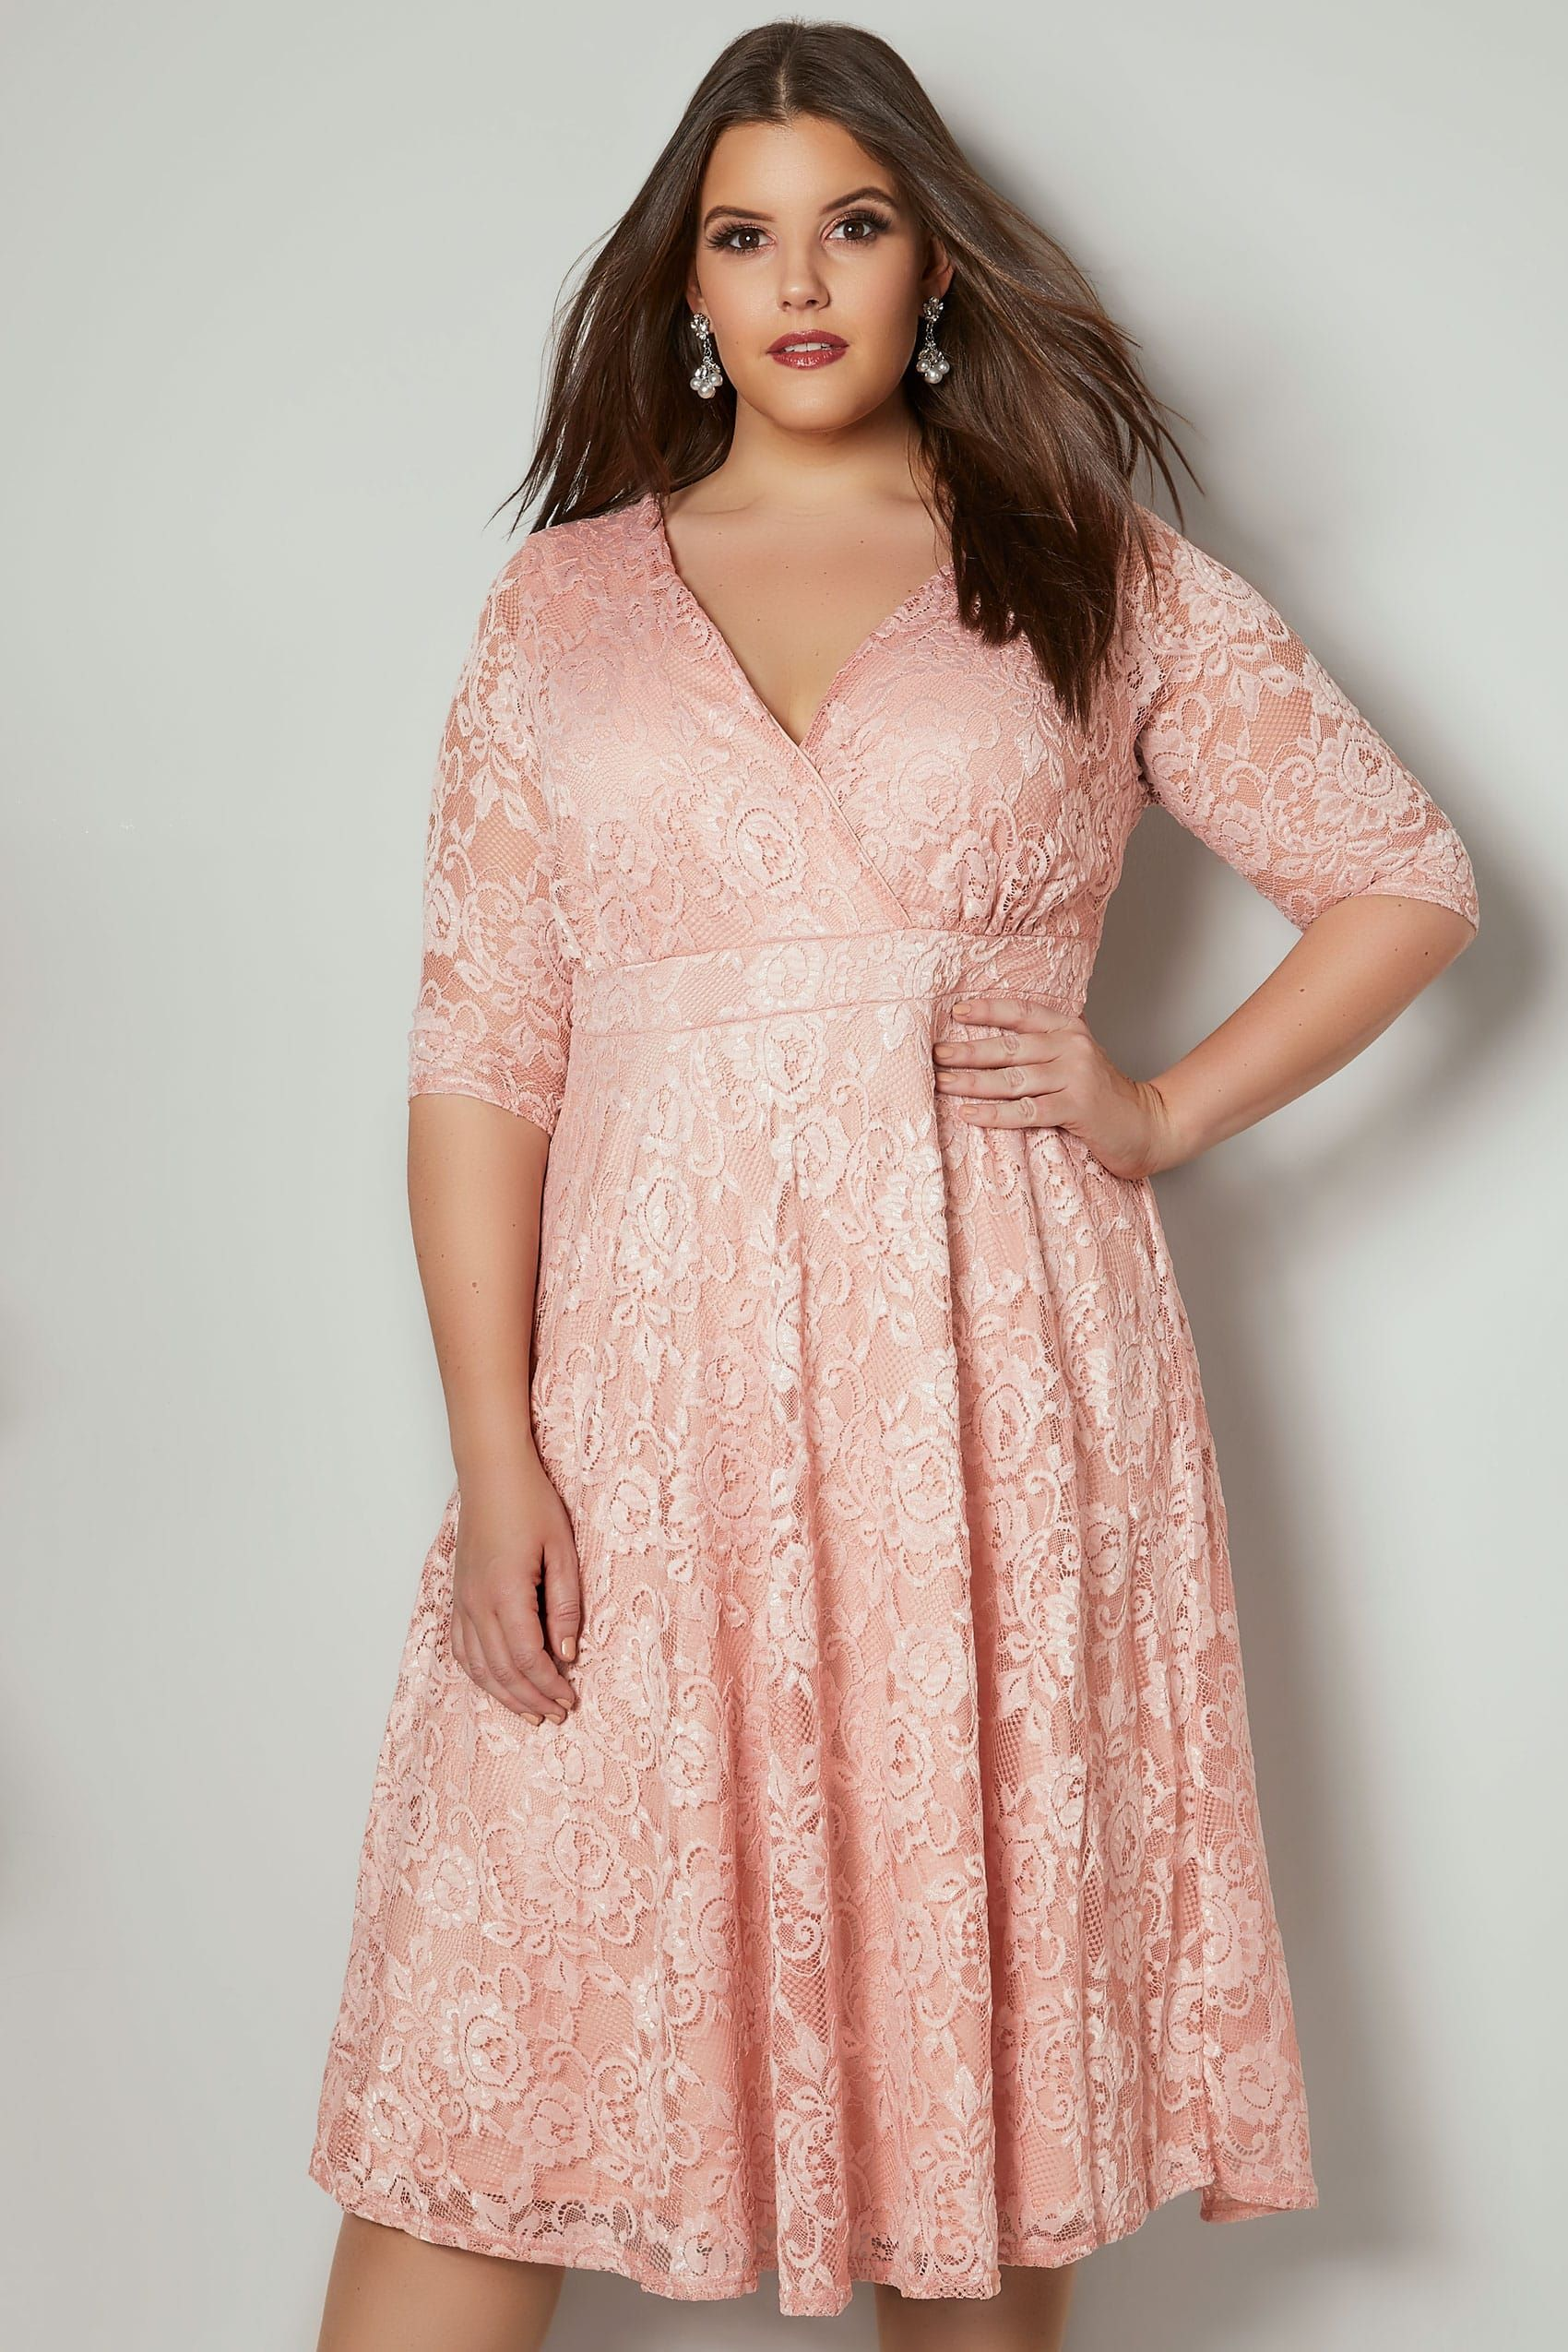 YOURS LONDON Pink Floral Lace Wrap Dress in 2019 | Plus size